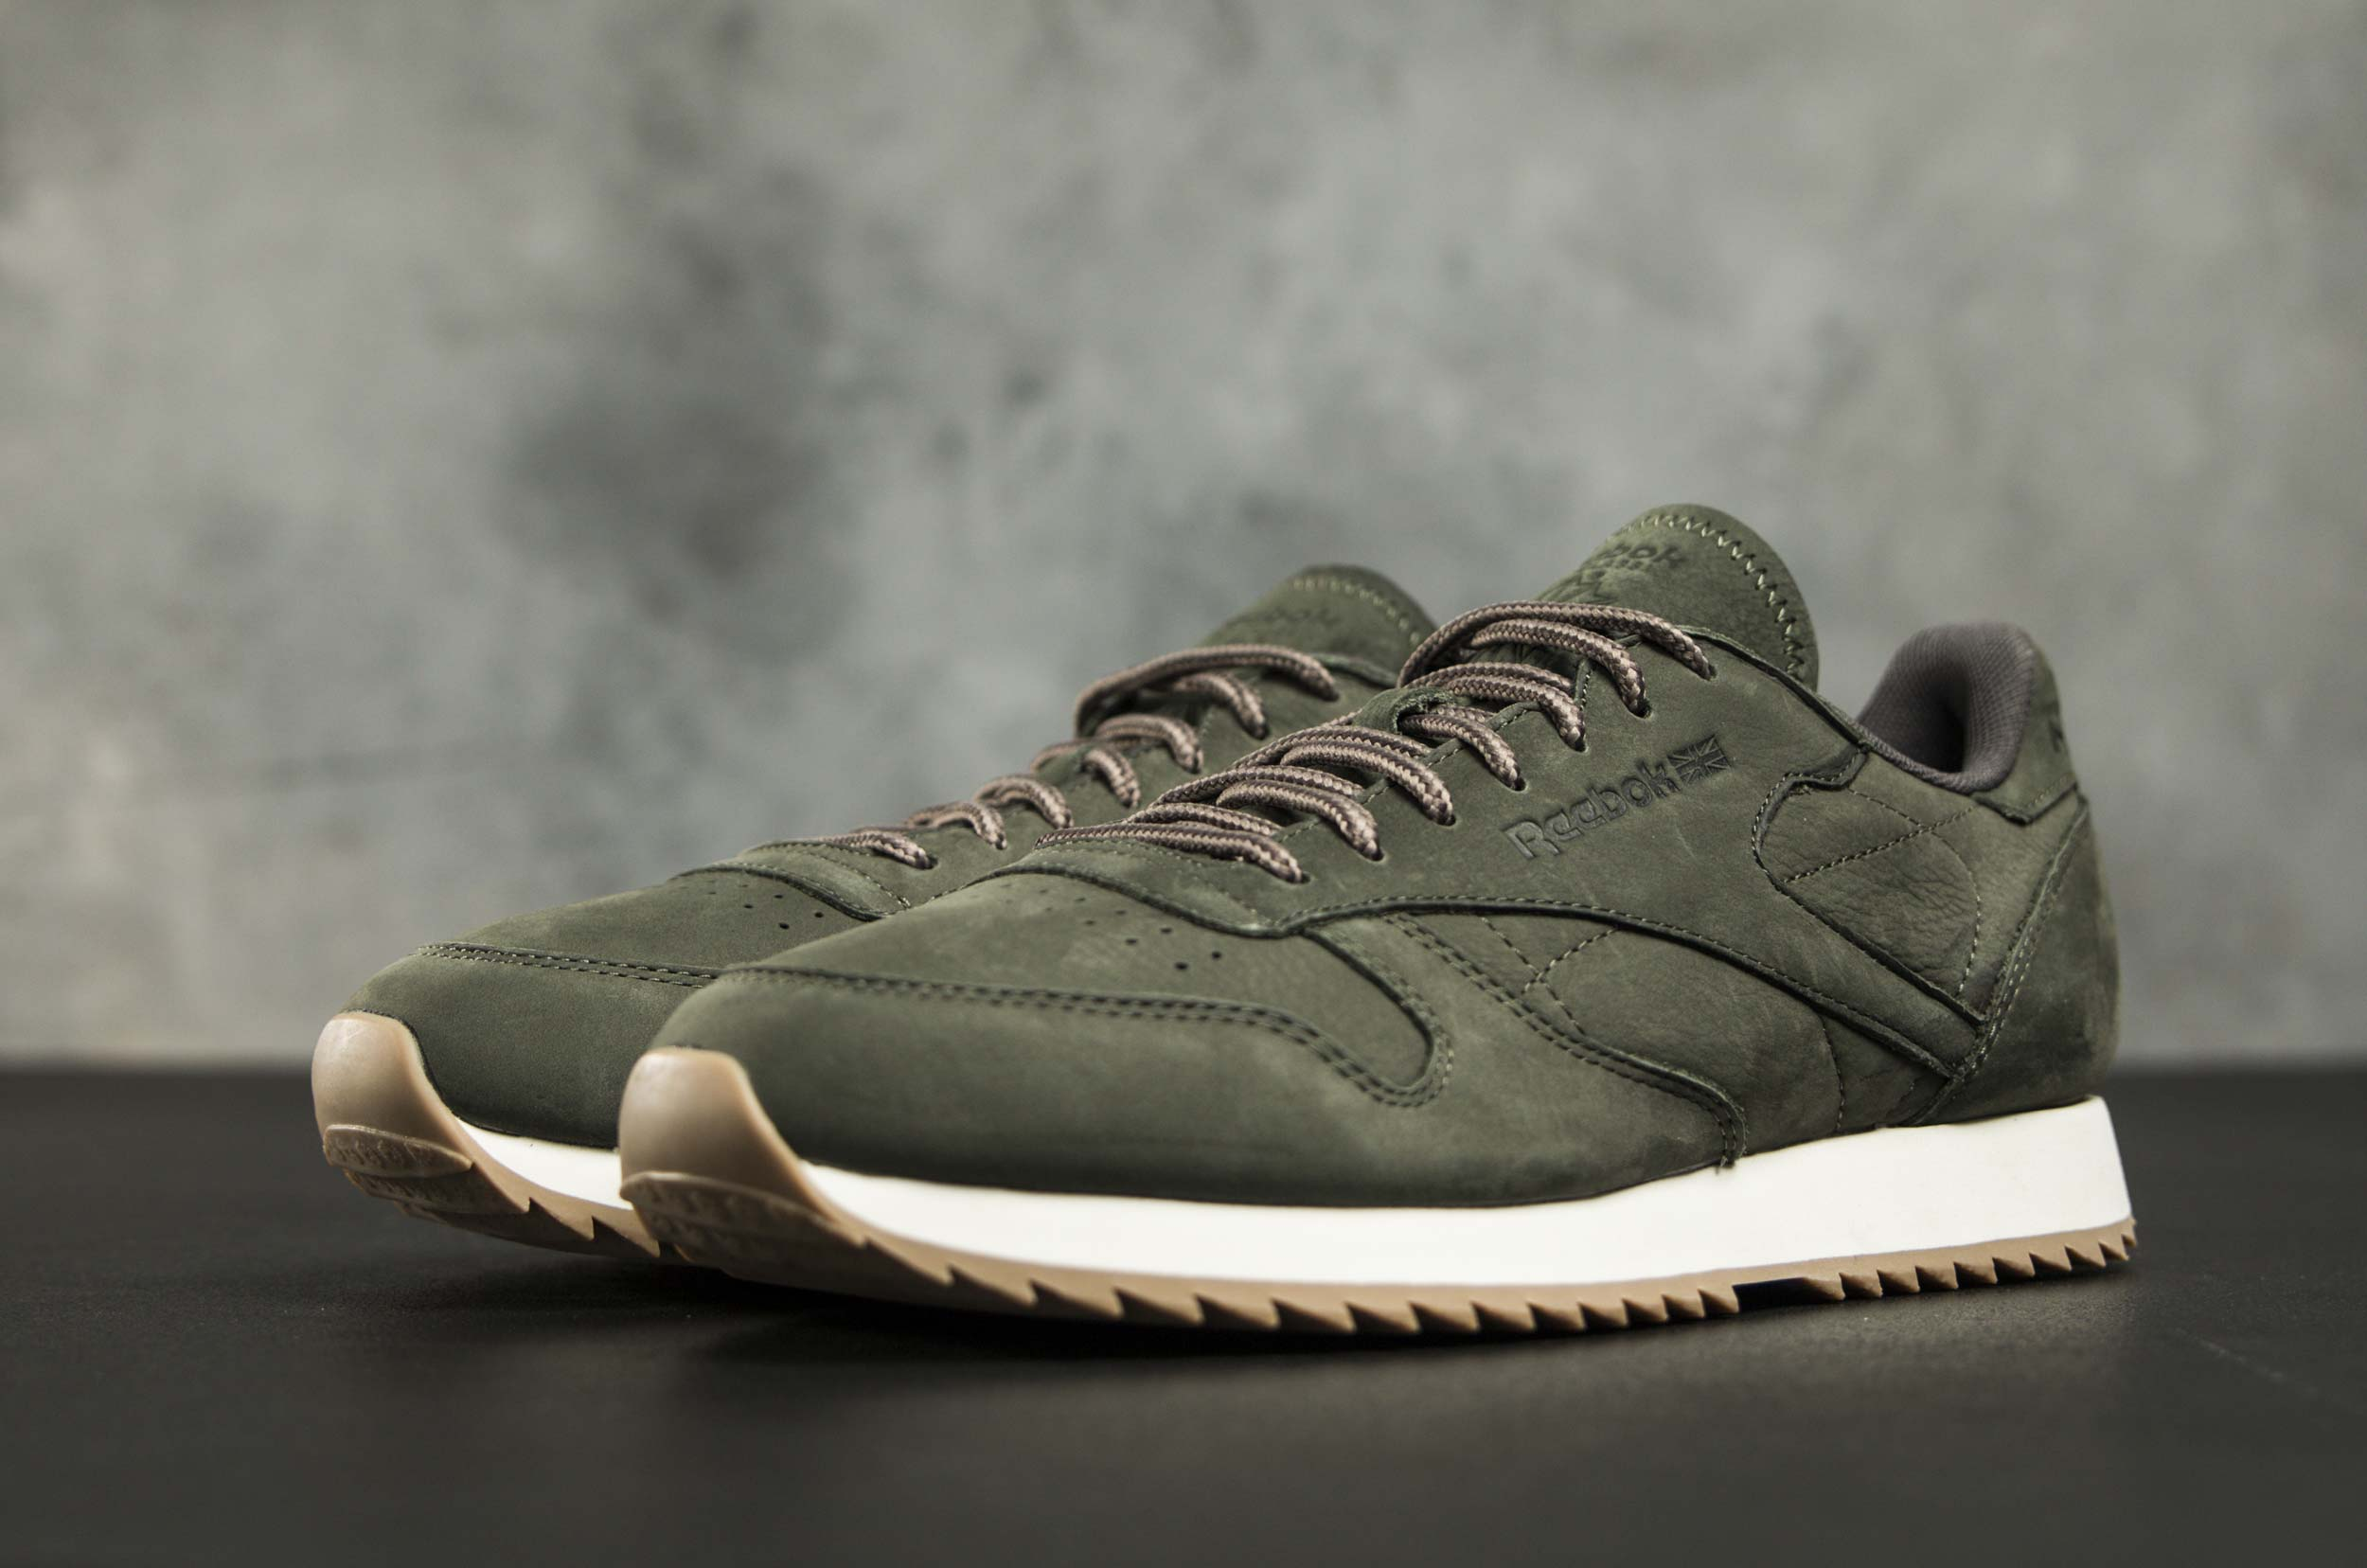 753395729bee4 ... Reebok Classics CL LEATHER RIPPLE WP 10 BS7852 Χακί ...